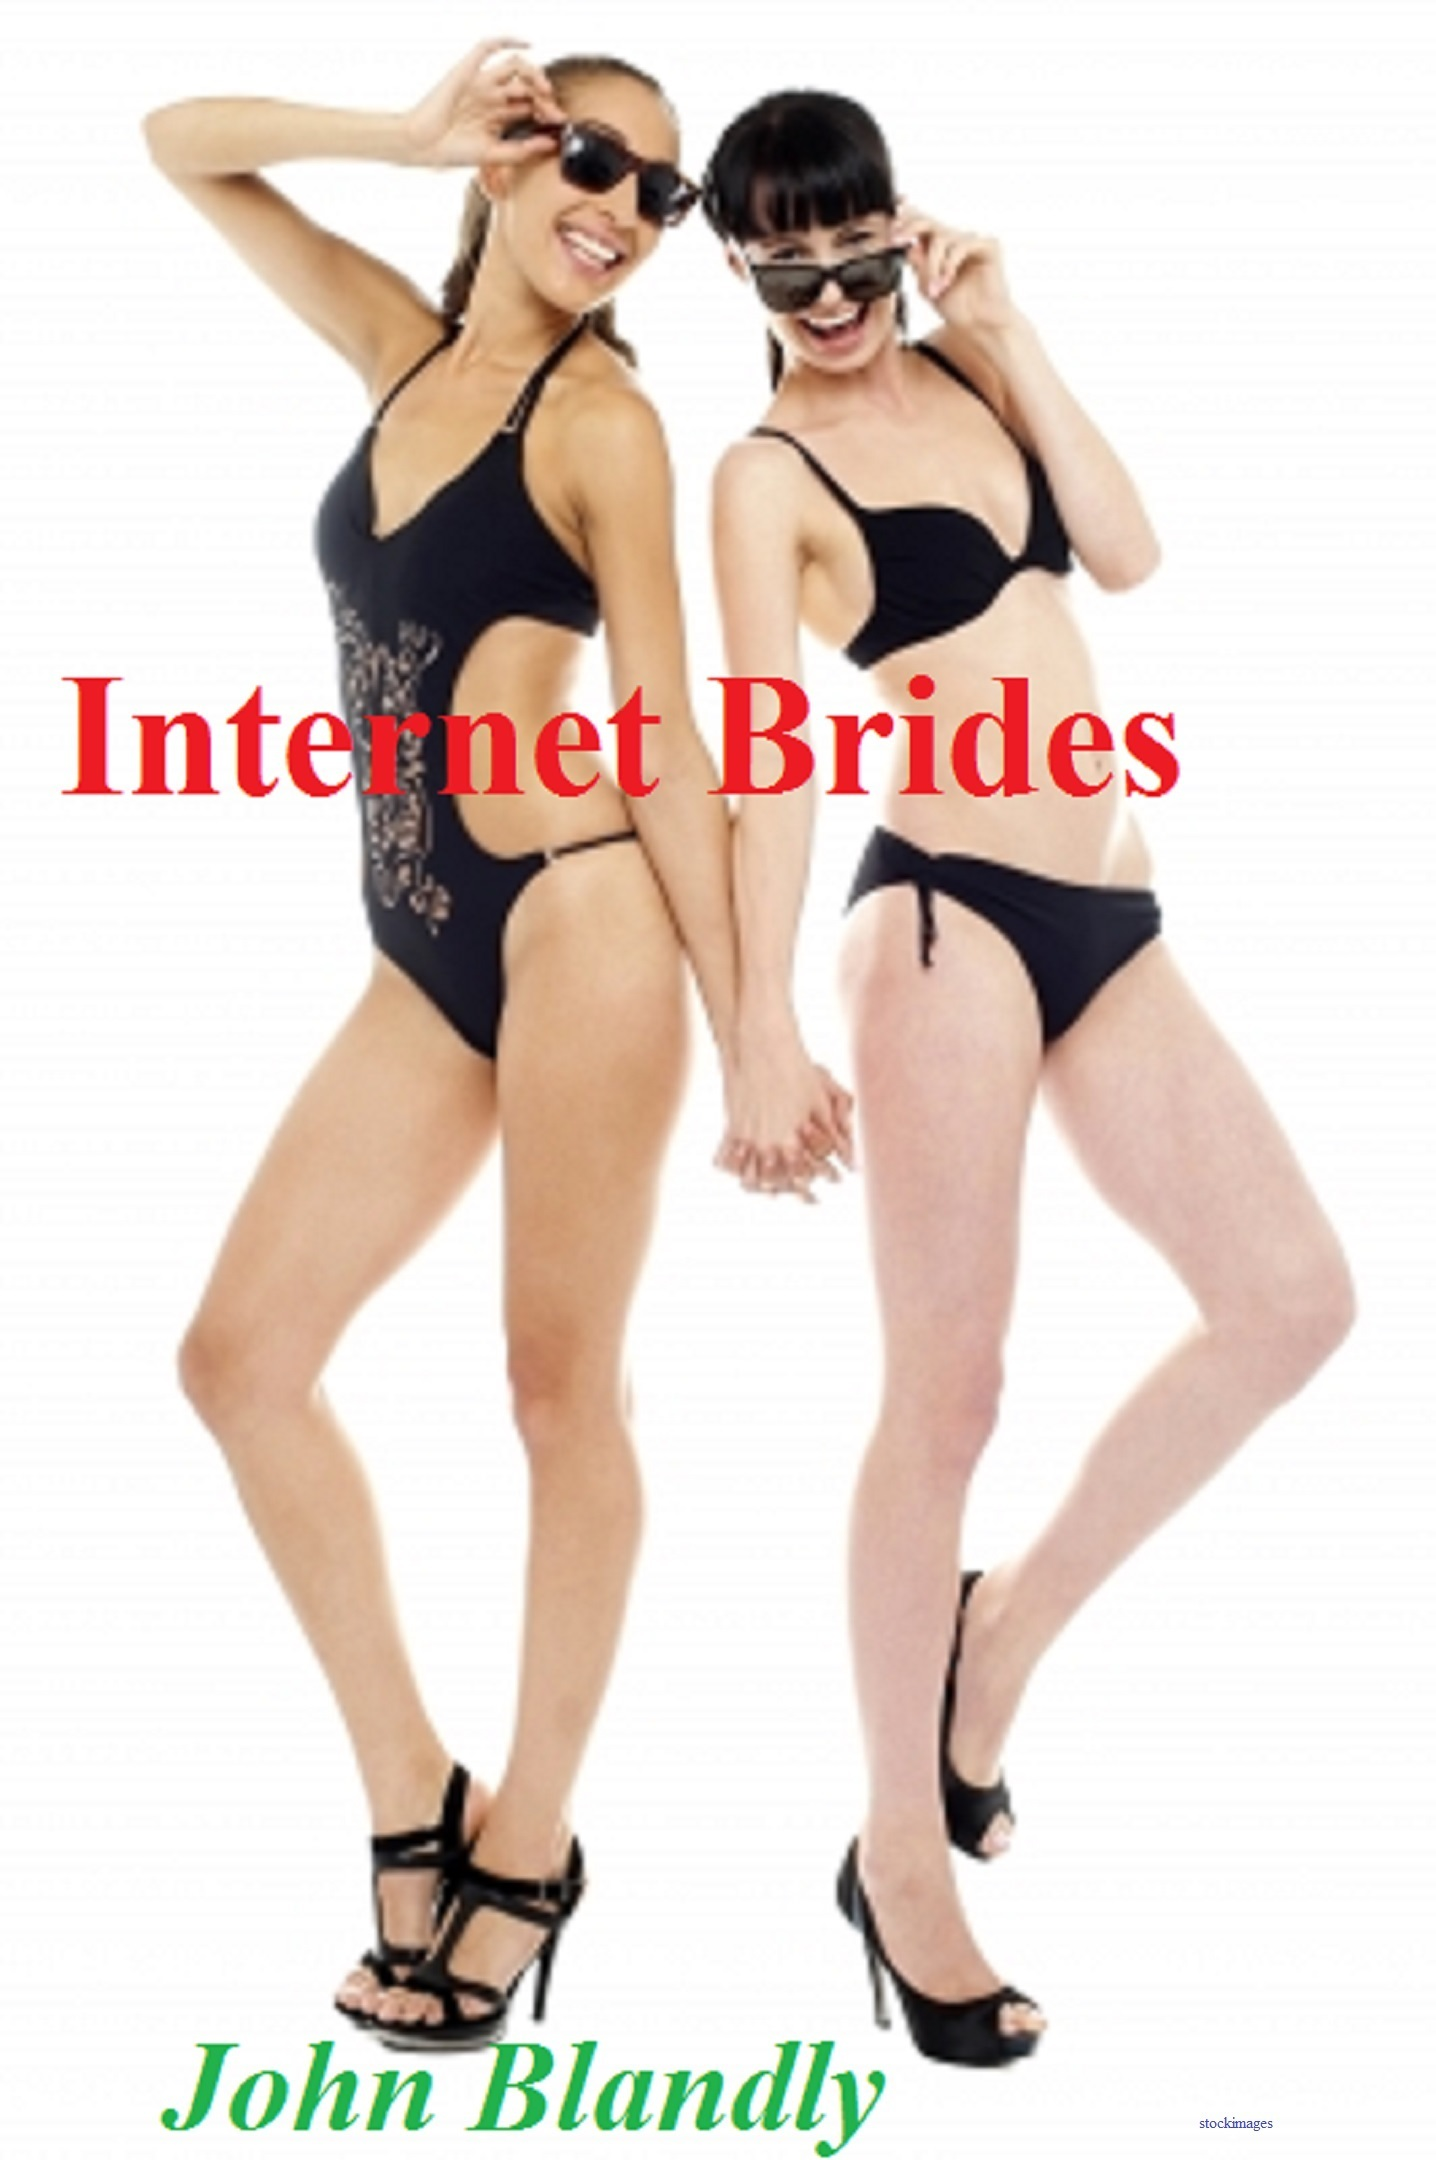 Internet Brides John Blandly